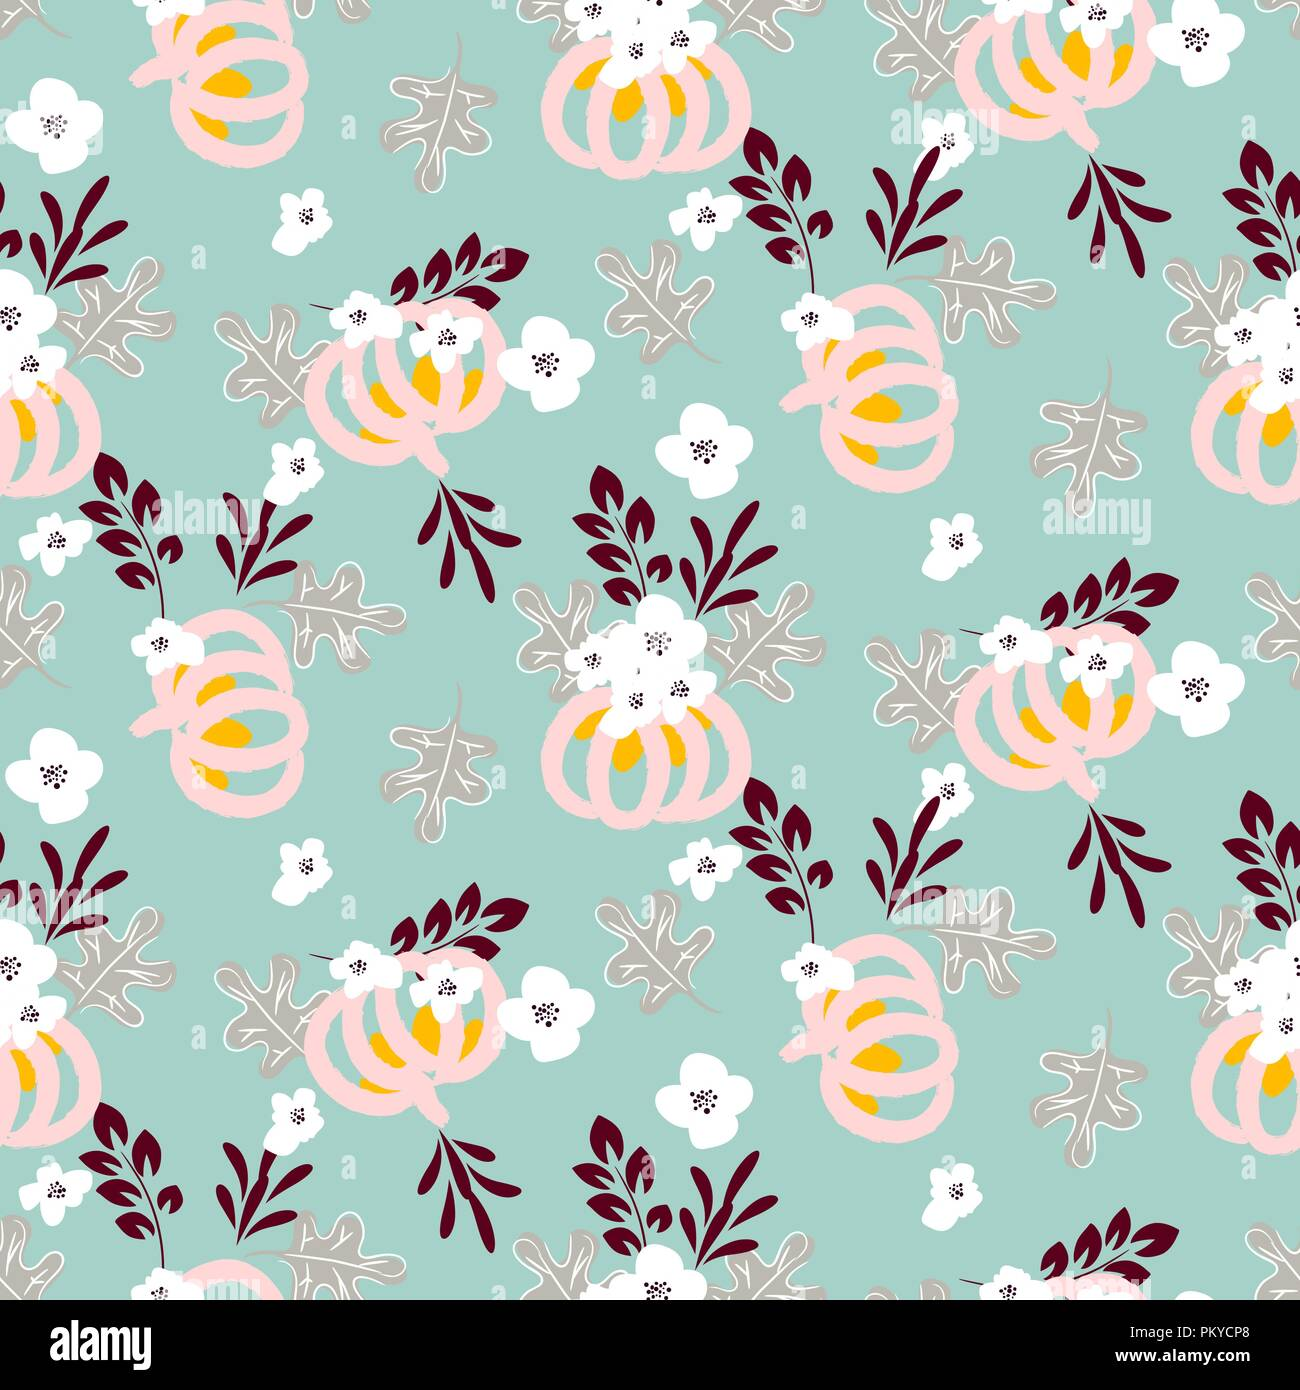 Autumn beautiful chic seamless vector pattern with pumpkins and flowers on blue background. - Stock Vector